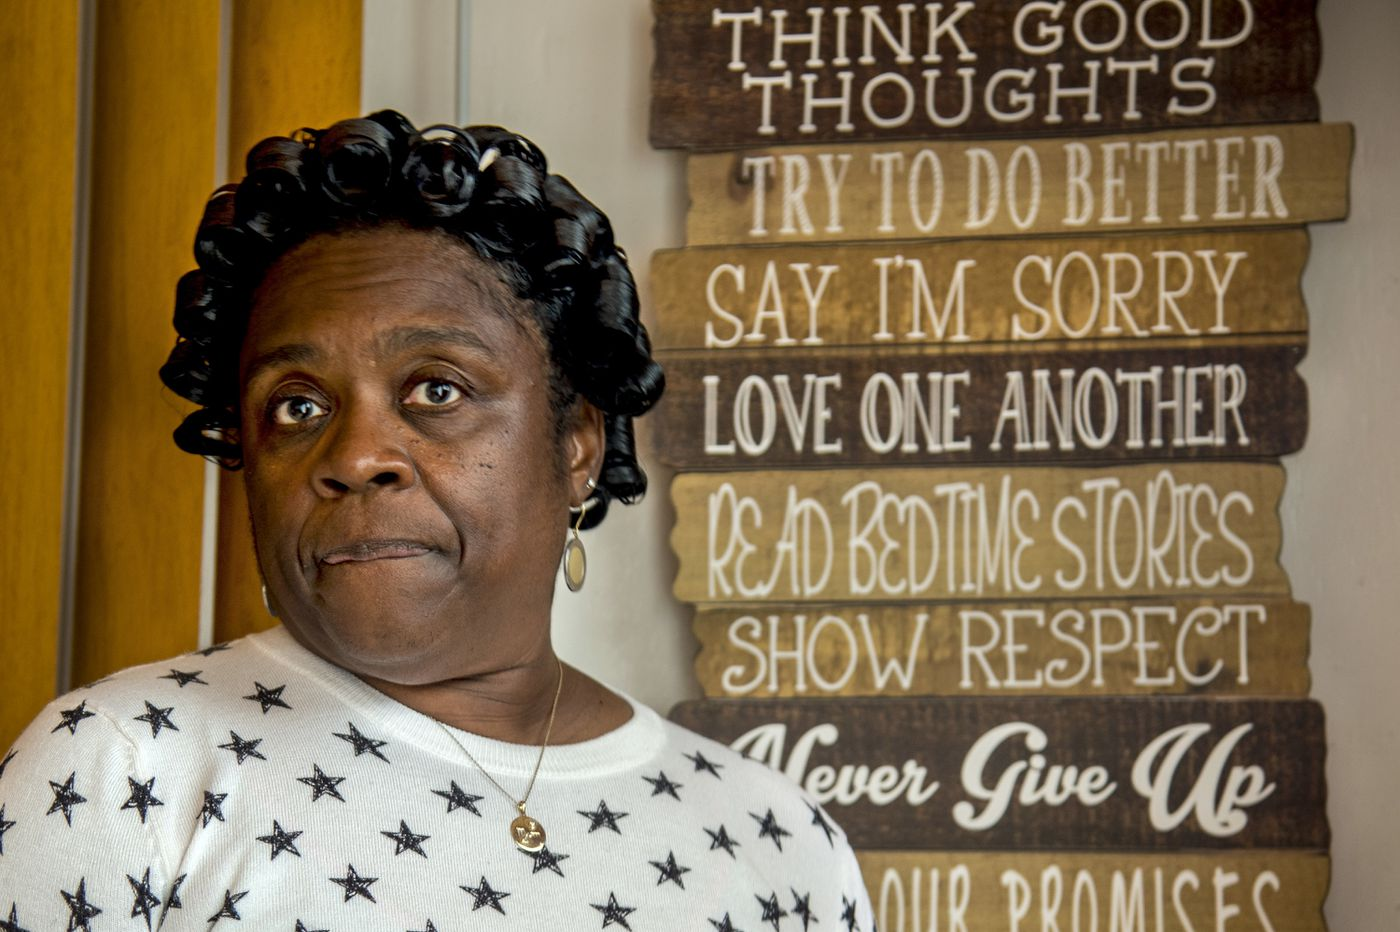 She says her granddaughter's acceptance to Philly charter was rescinded because of her special-education status